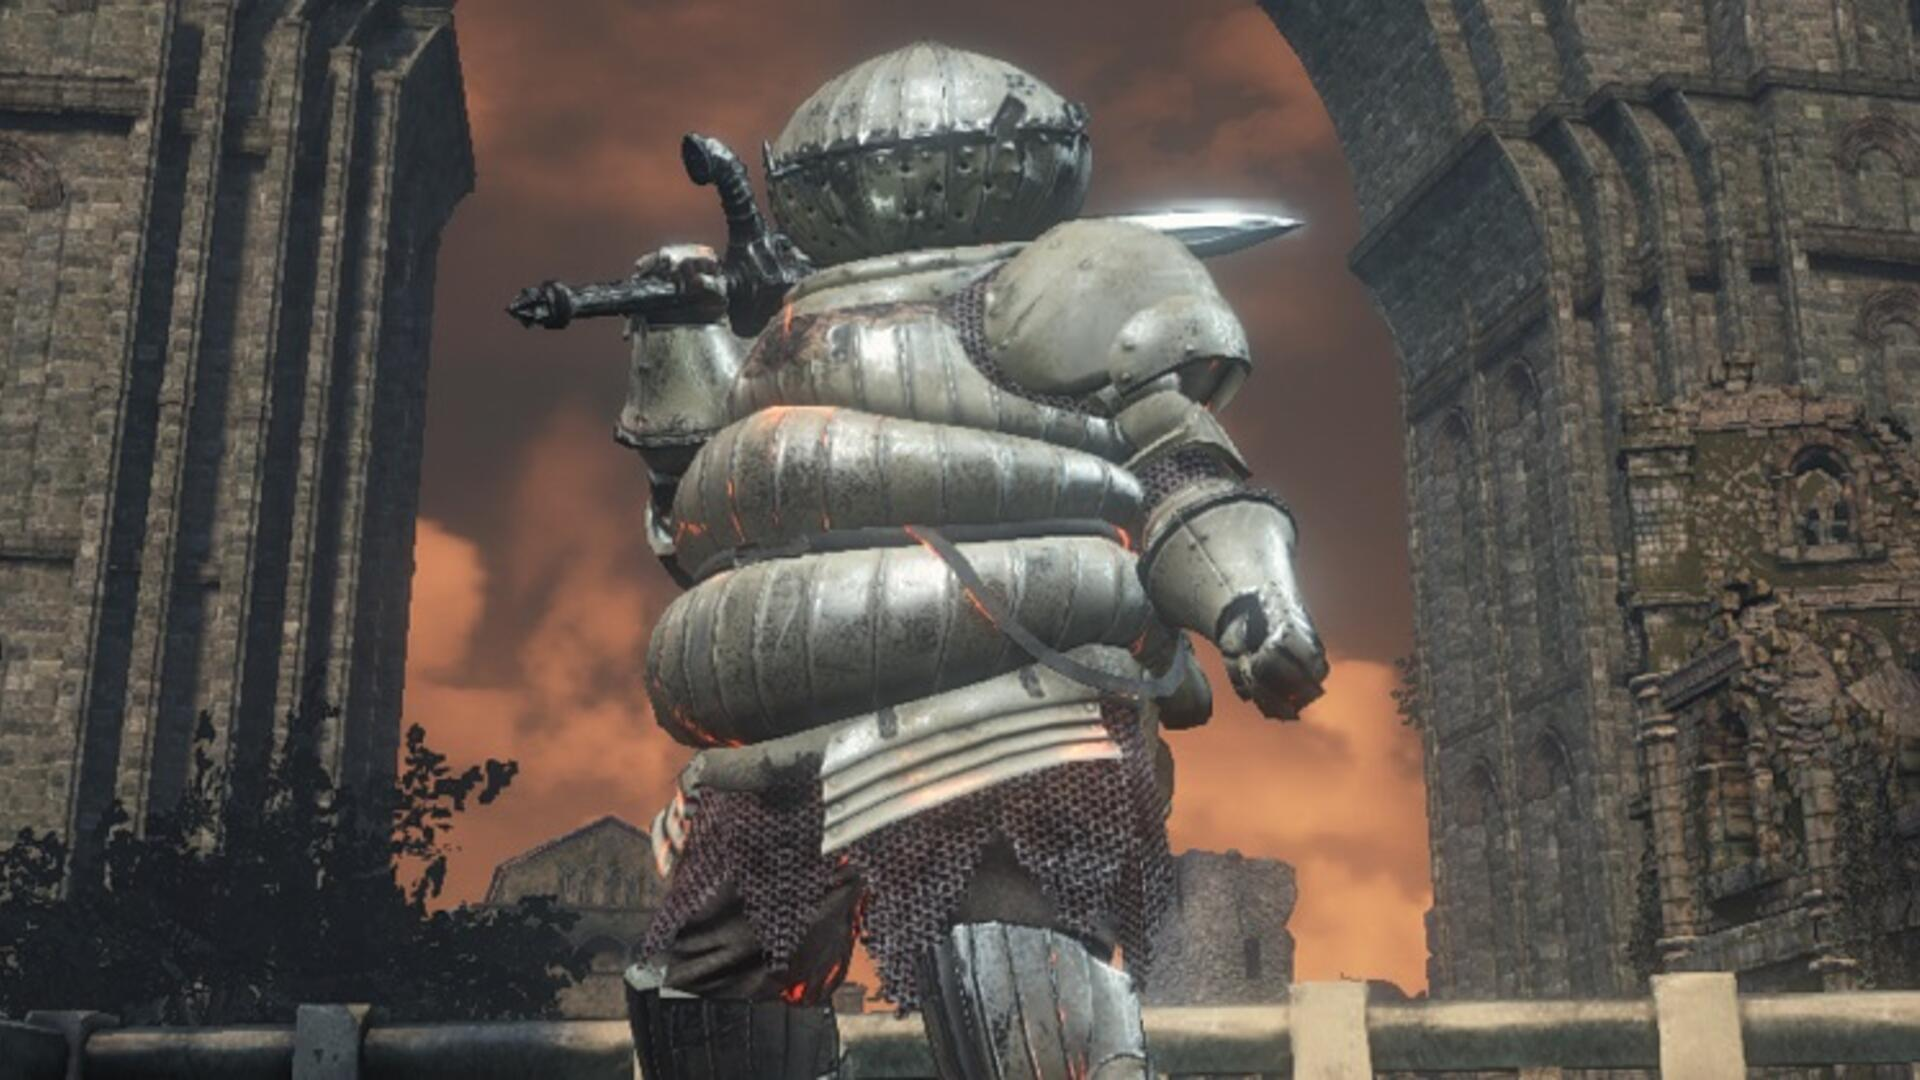 Dark Souls 3: How to Get the Catarina Armor Set - Find Patches, Siegward